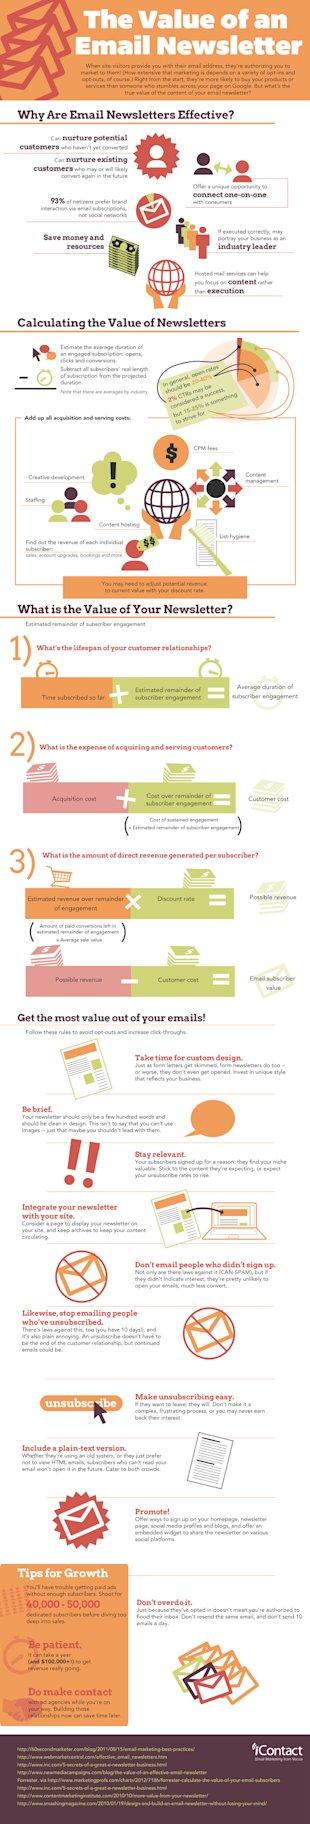 The Value of an Email Newsletter [Infographic] image EmailNewsletter